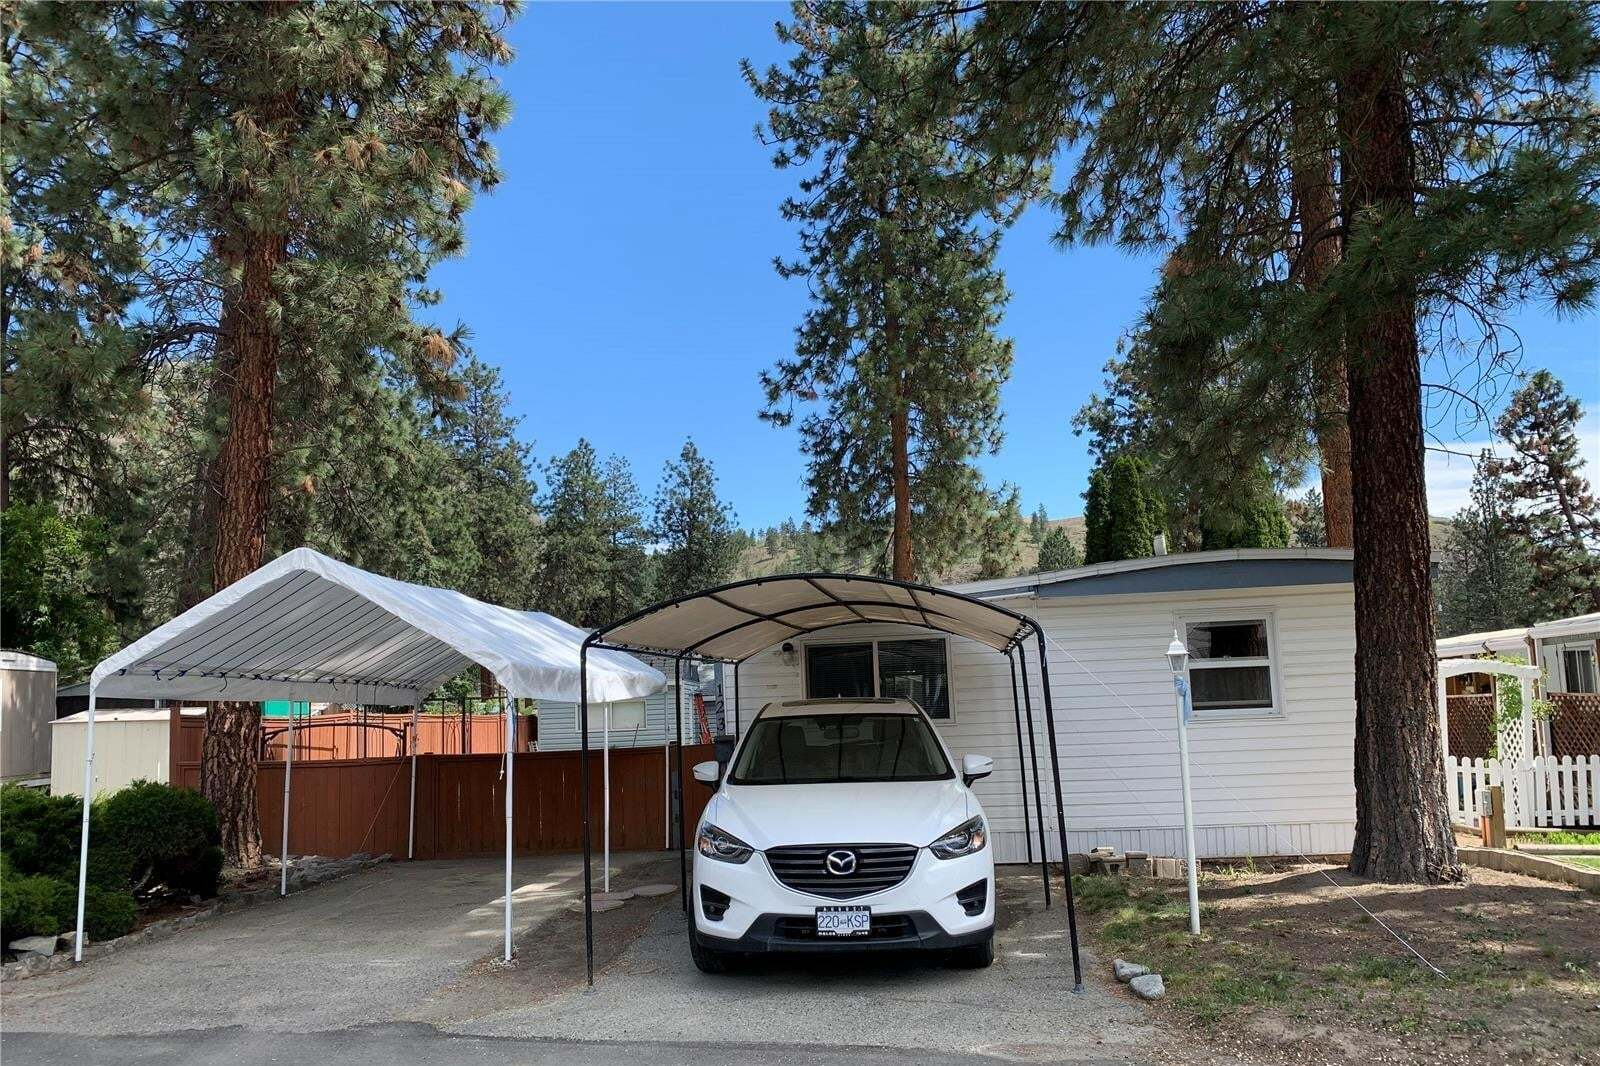 Home for sale at 1999 Highway 97s  South West Kelowna British Columbia - MLS: 10206772